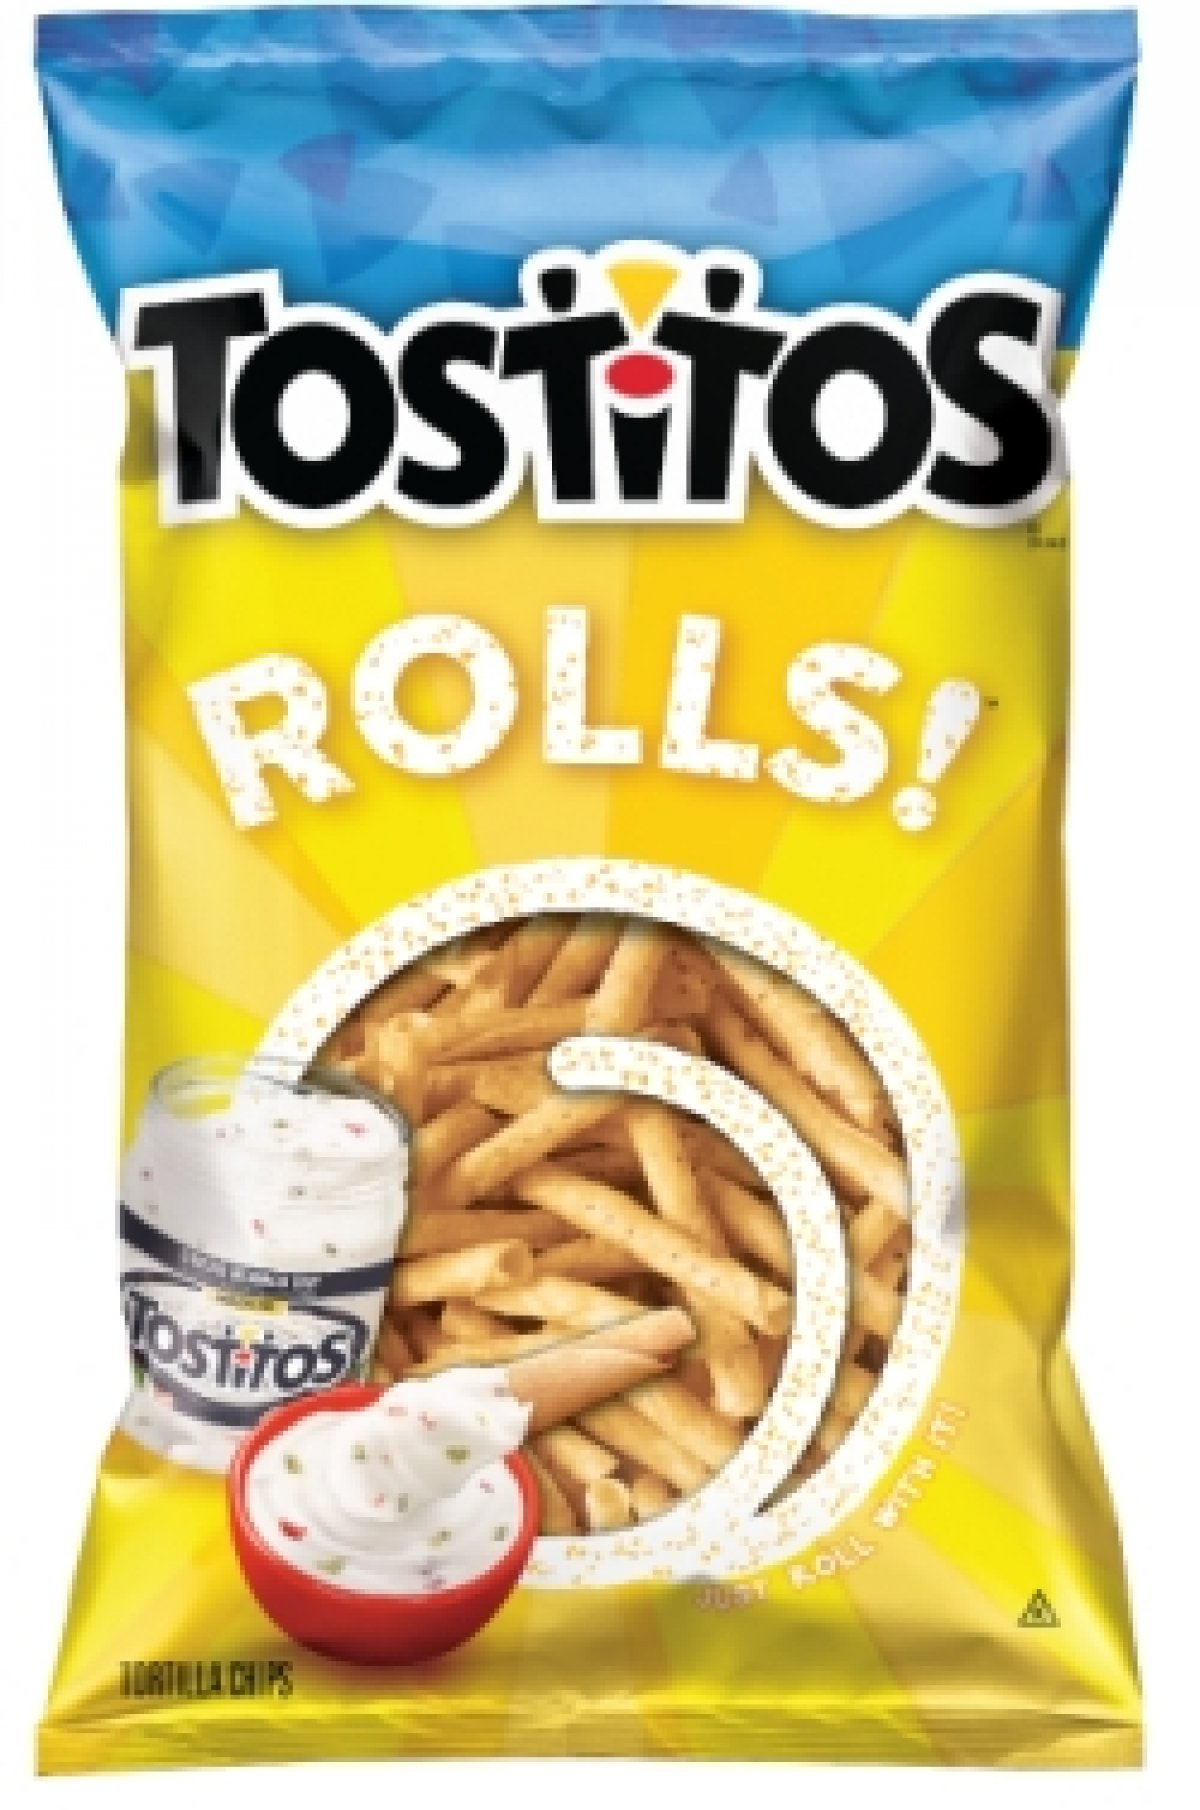 Pepsico introduces Tostitos Rolls! Tortilla Chips